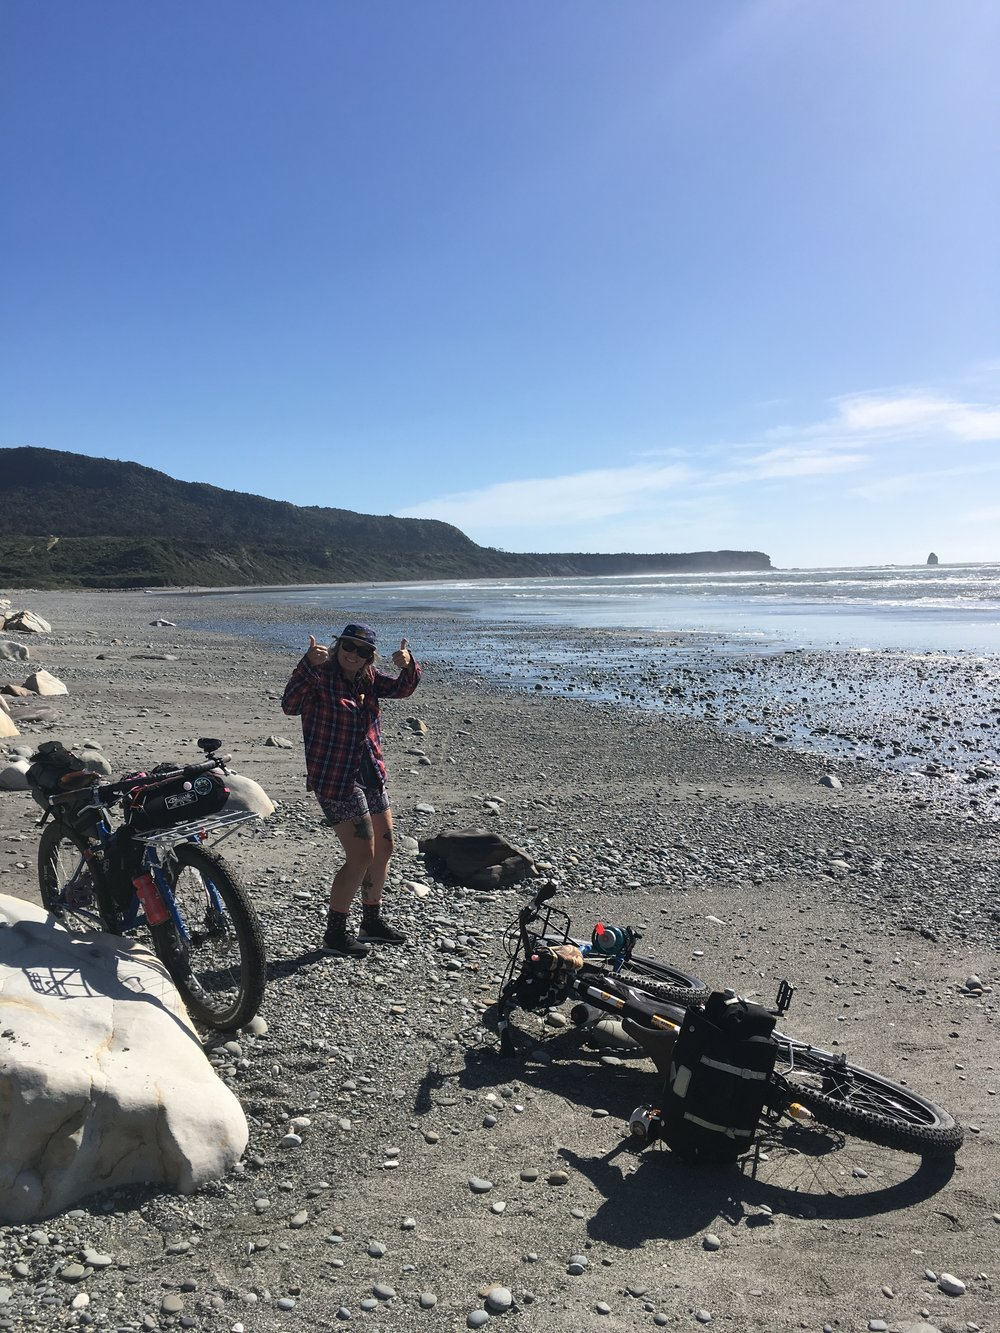 From the North East to the West Coast phew made back to the ocean! Truly emotional feeling to see the coast again!! South Island, NZ surly gang tour 2016/2017